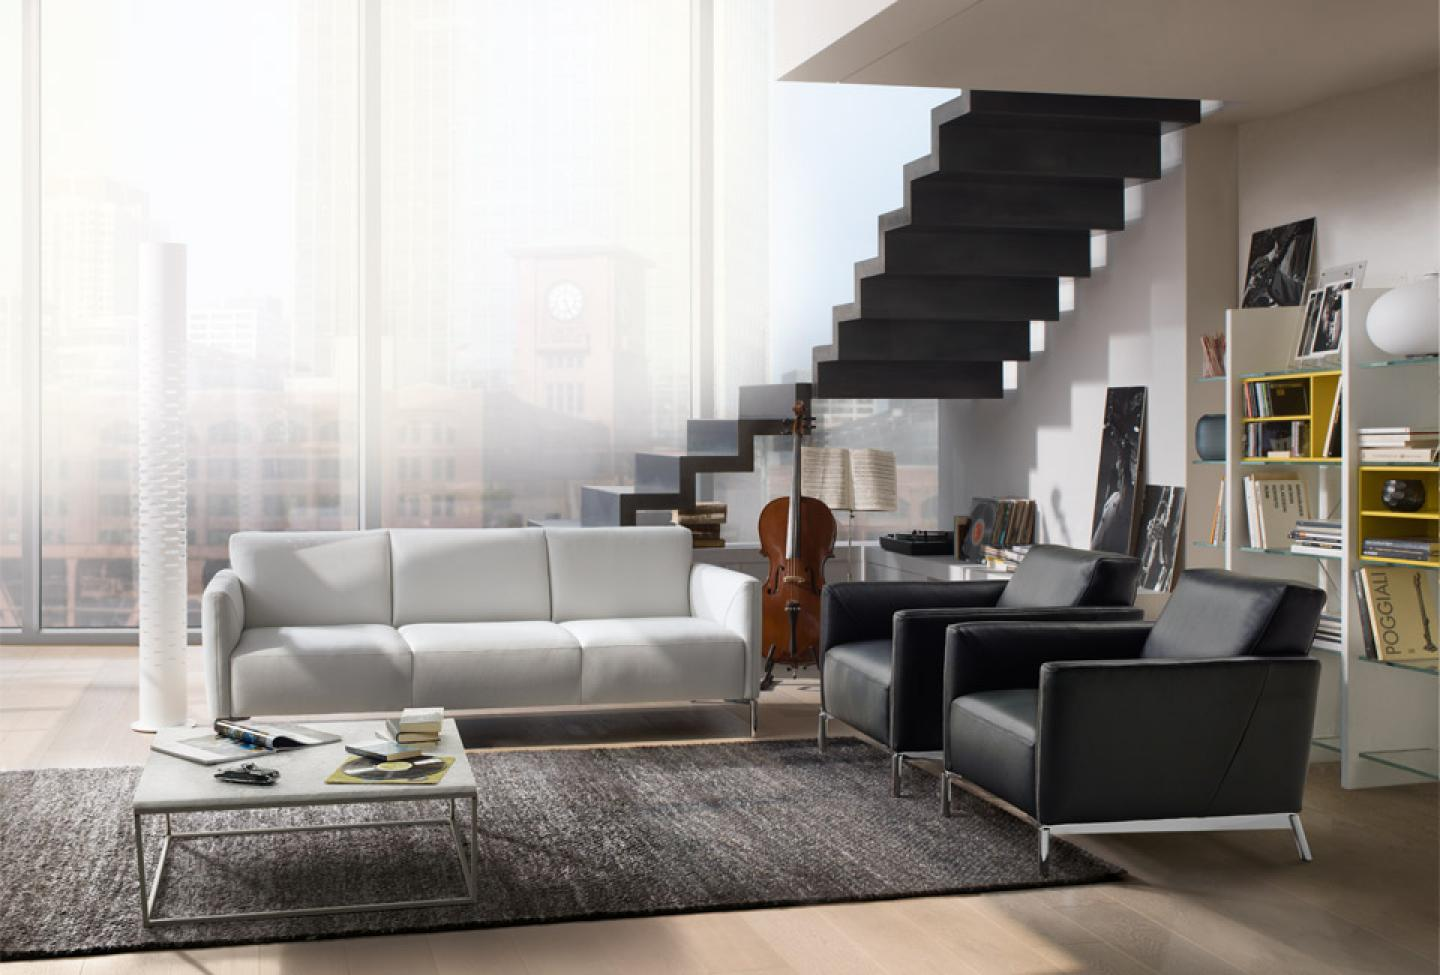 photos canap natuzzi soldes. Black Bedroom Furniture Sets. Home Design Ideas